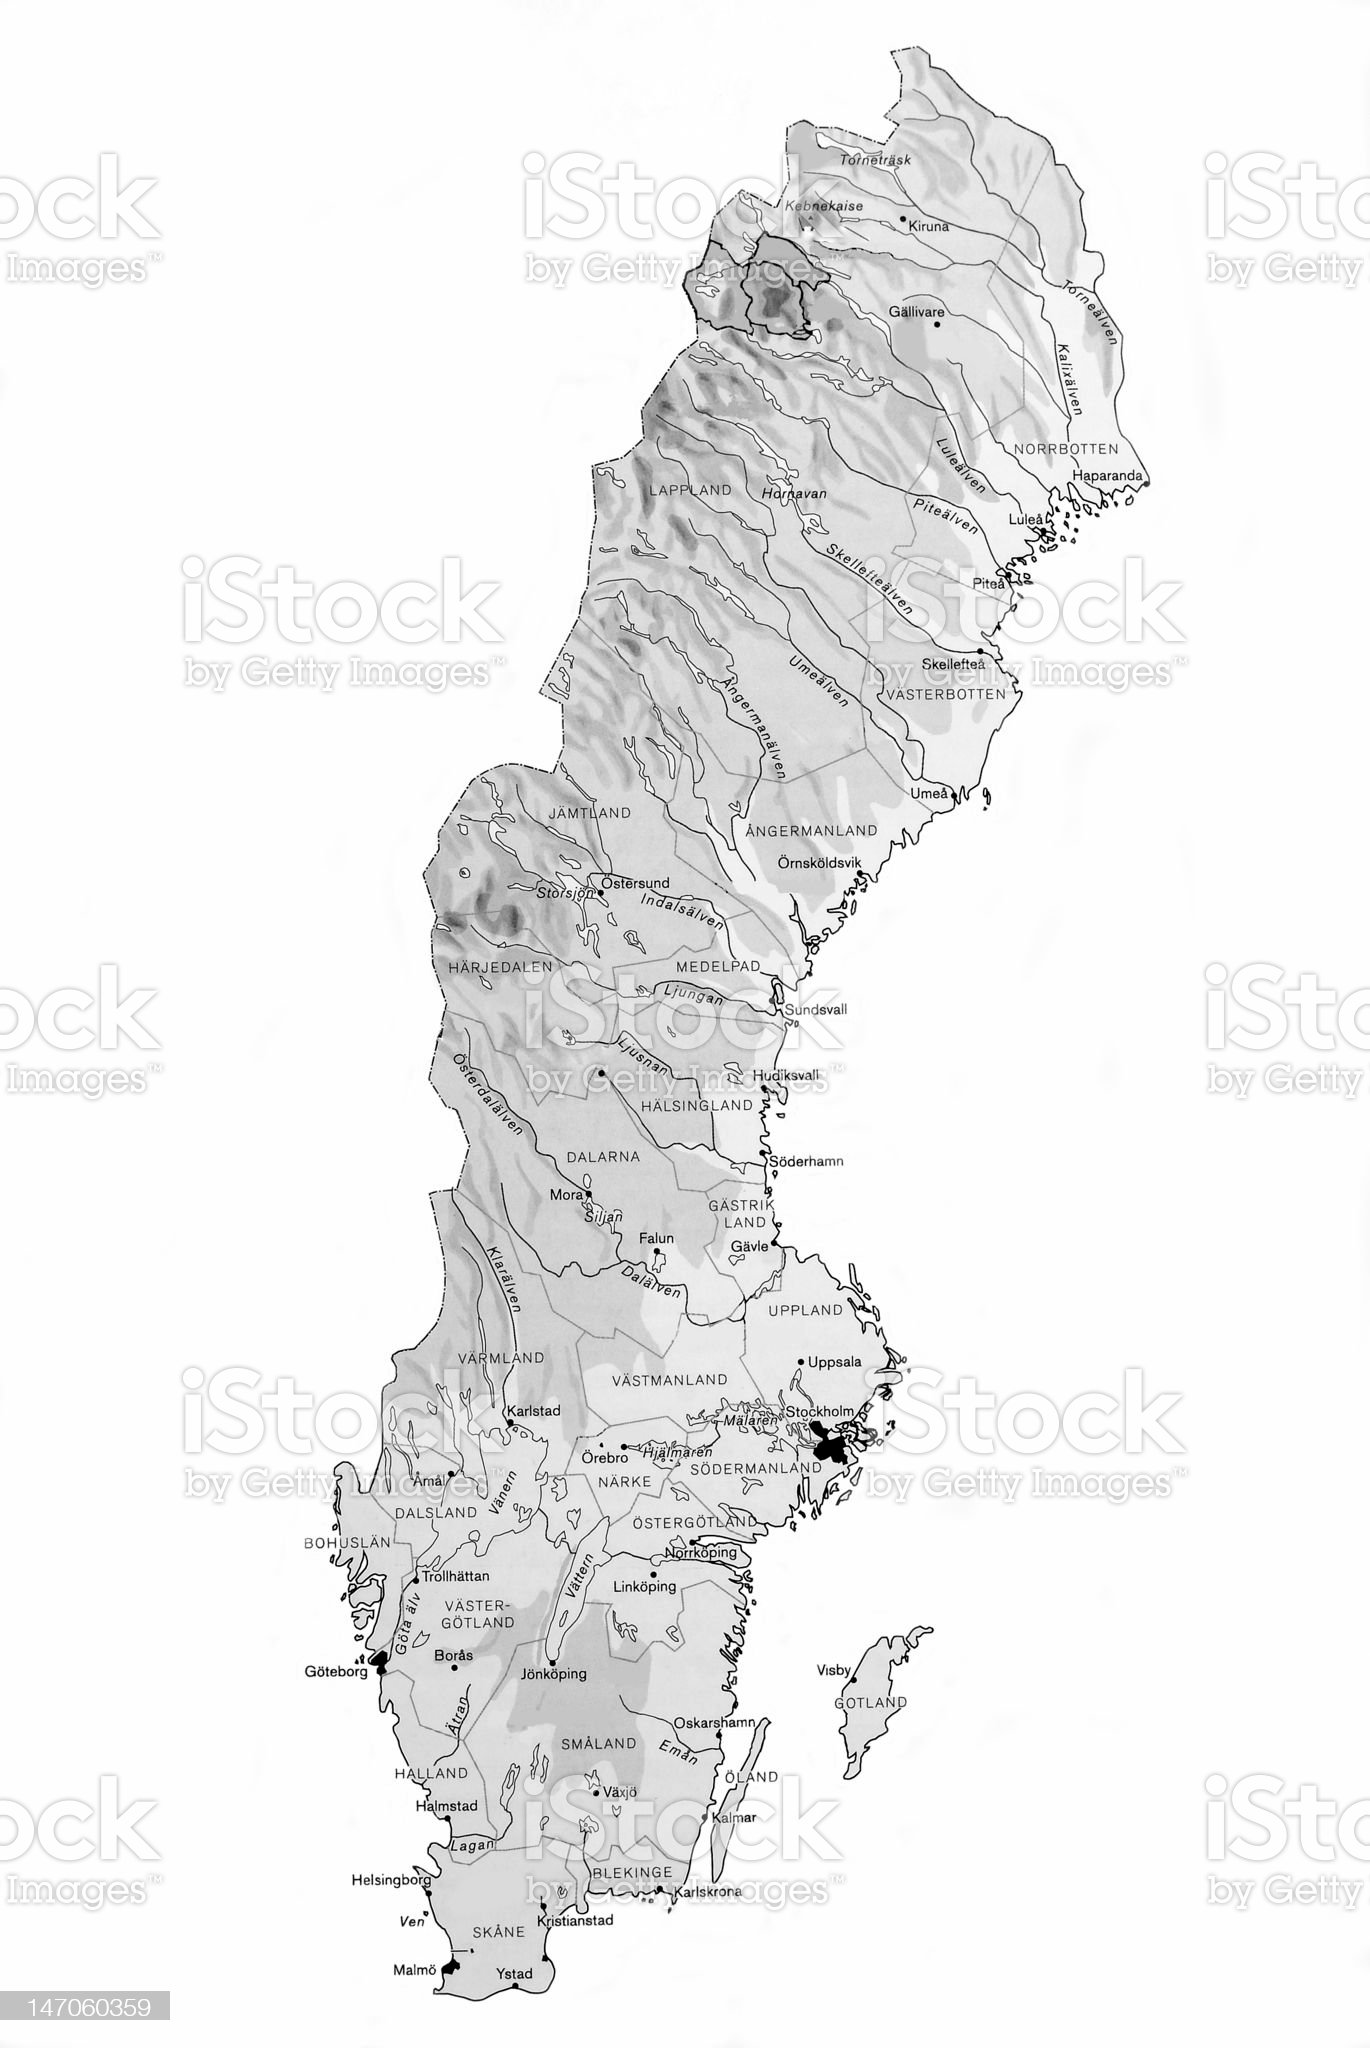 Map Of Sweden royalty-free stock photo